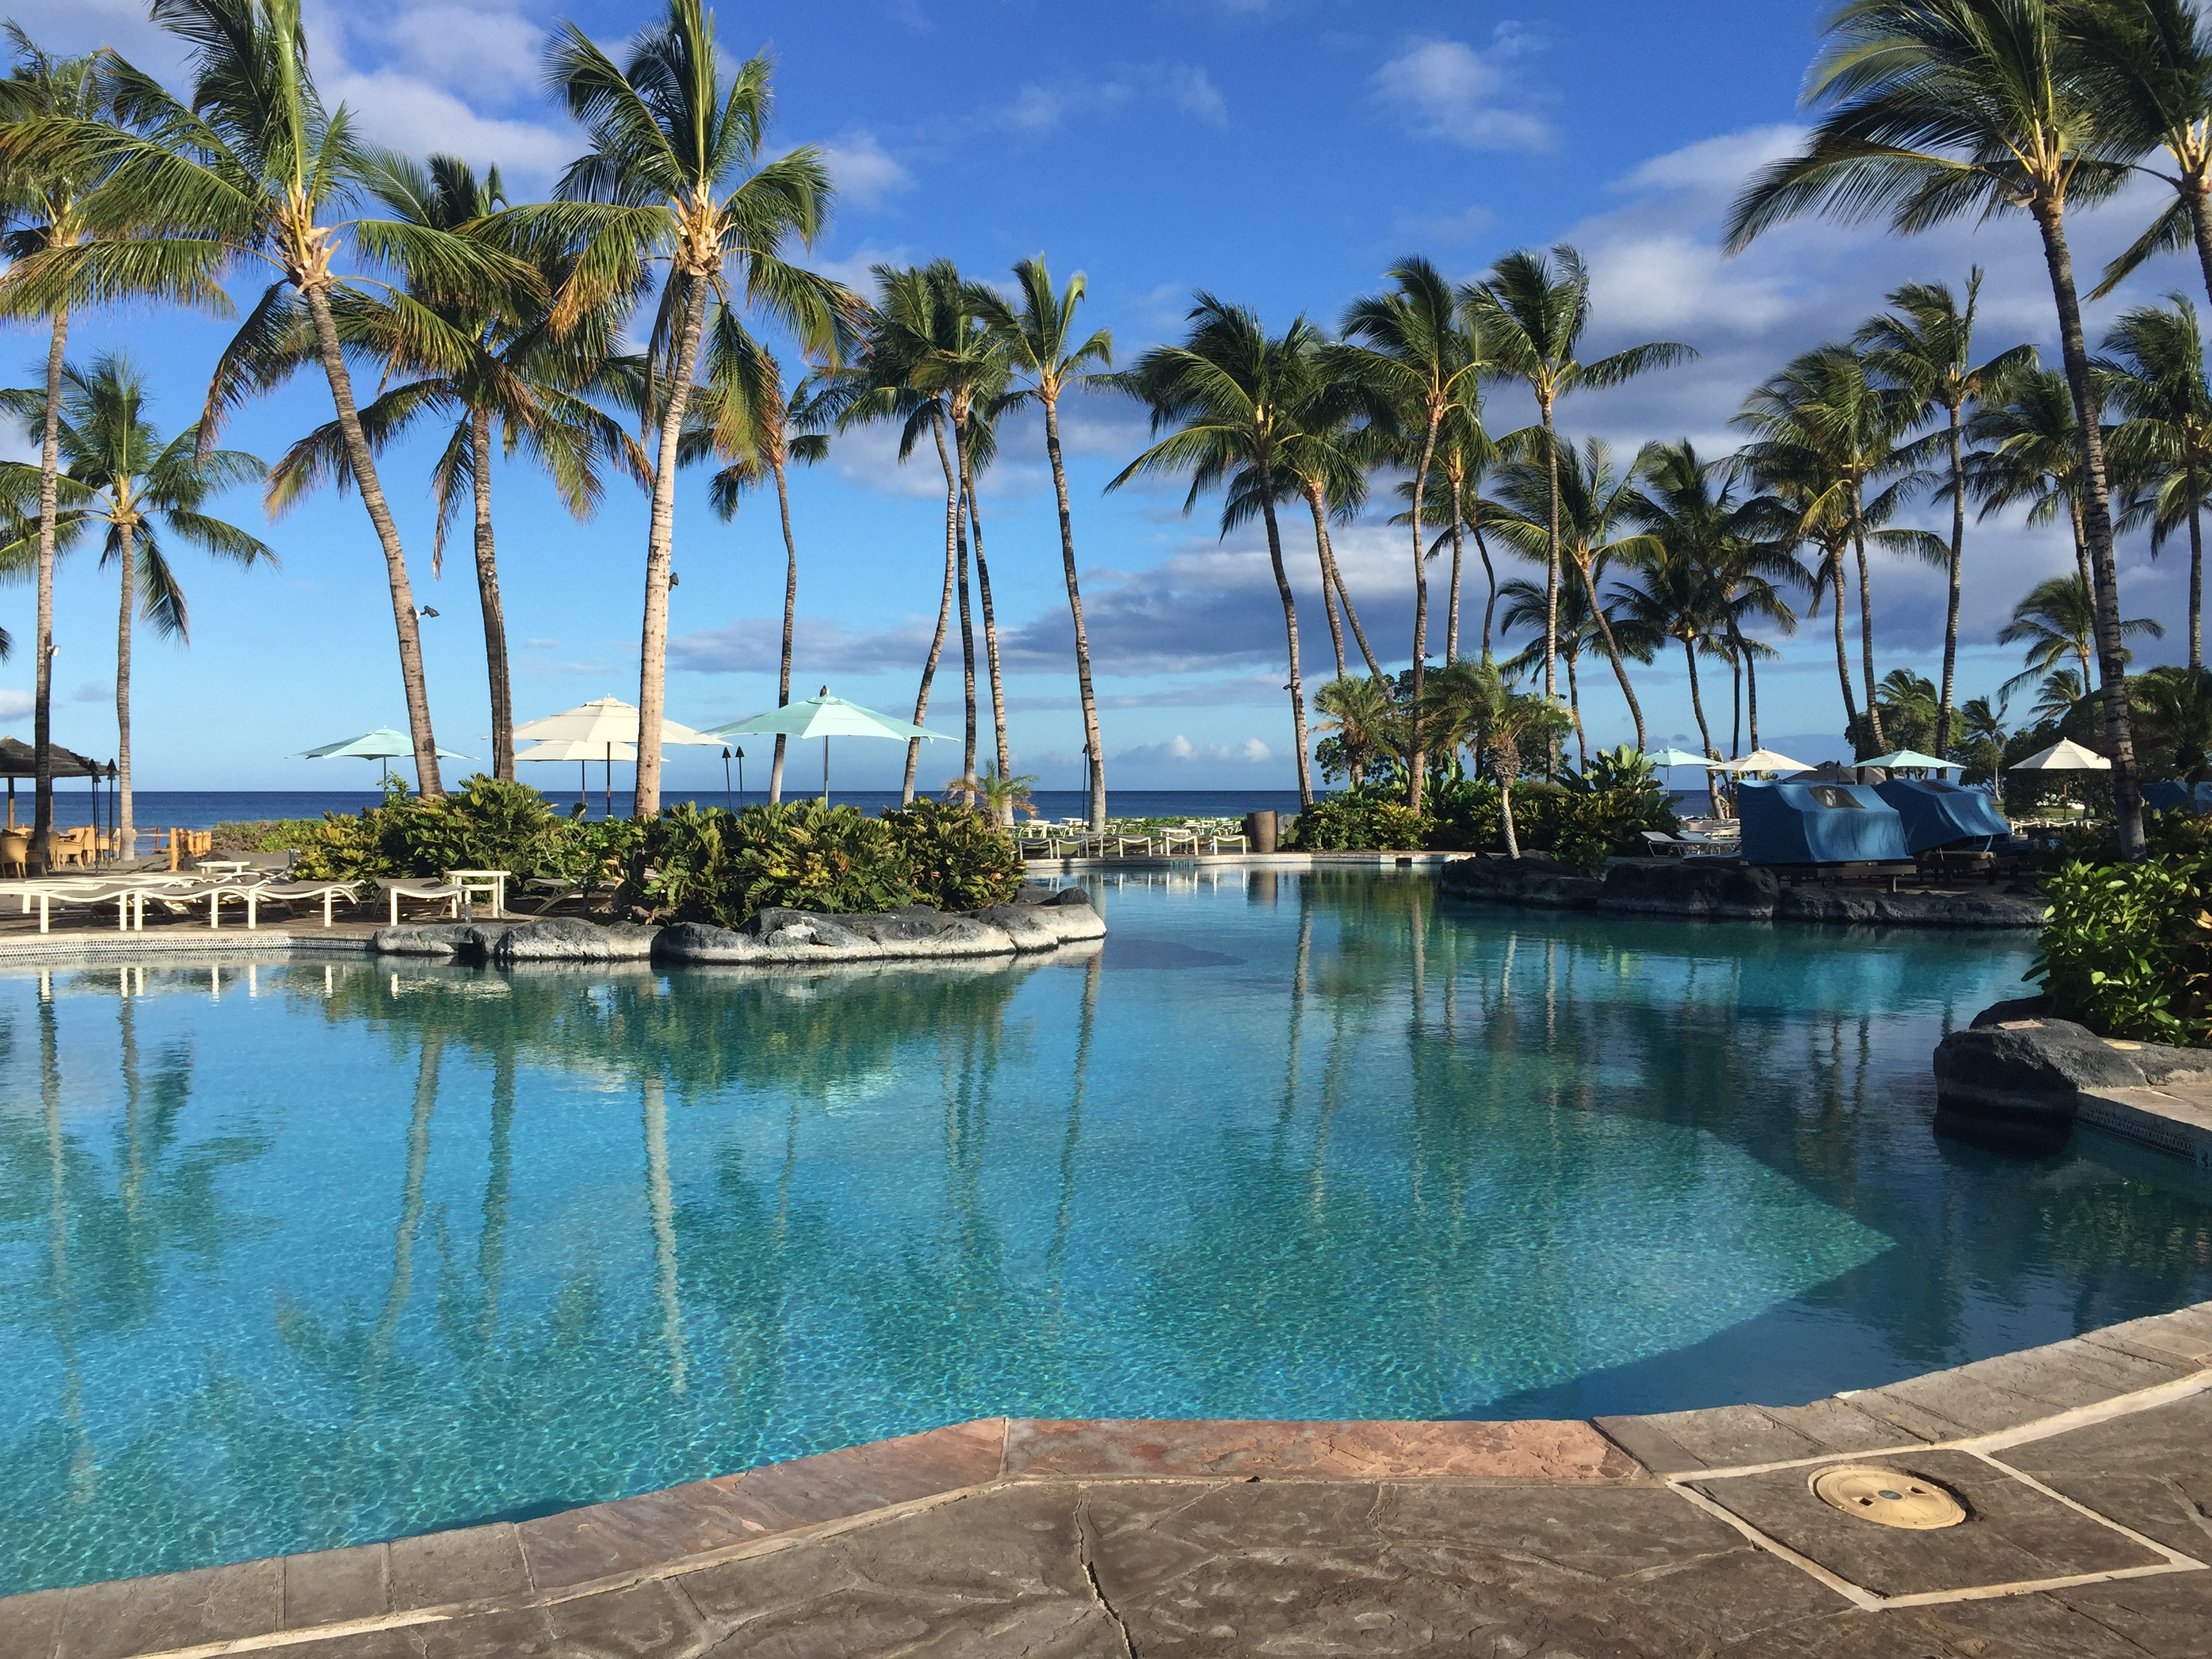 11 Reasons To Love The Fairmont Orchid  Hawaii  The Big